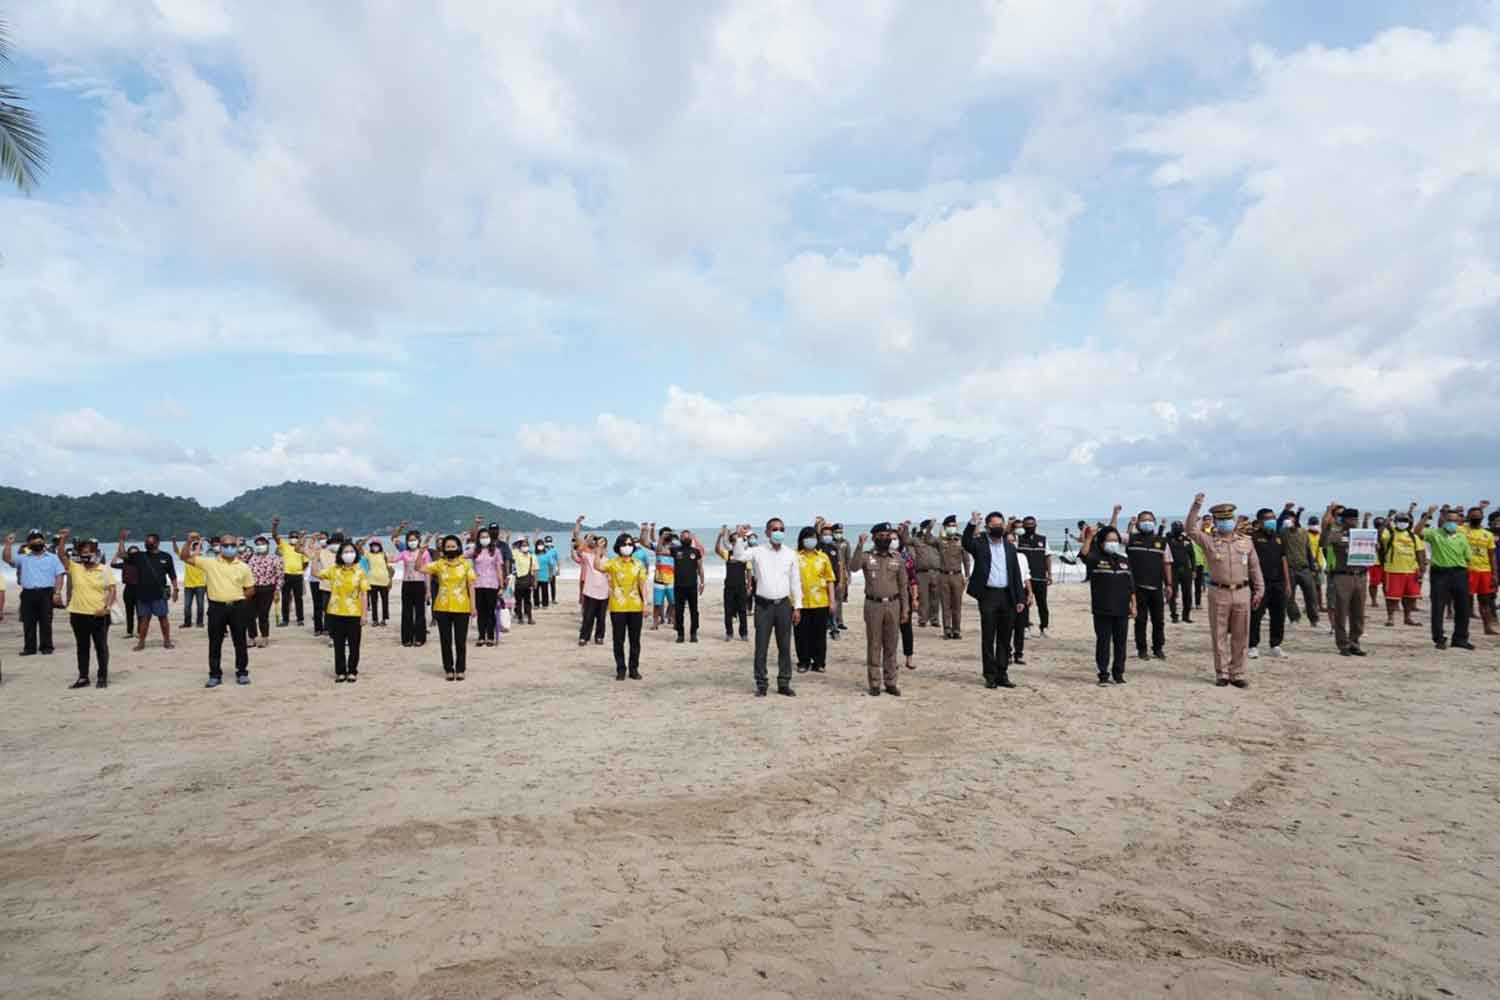 Phuket officials raise their hands as the island province's beaches are reopened for public use, at Patong beach on Tuesday. (Photo: Achadtaya Chuenniran)